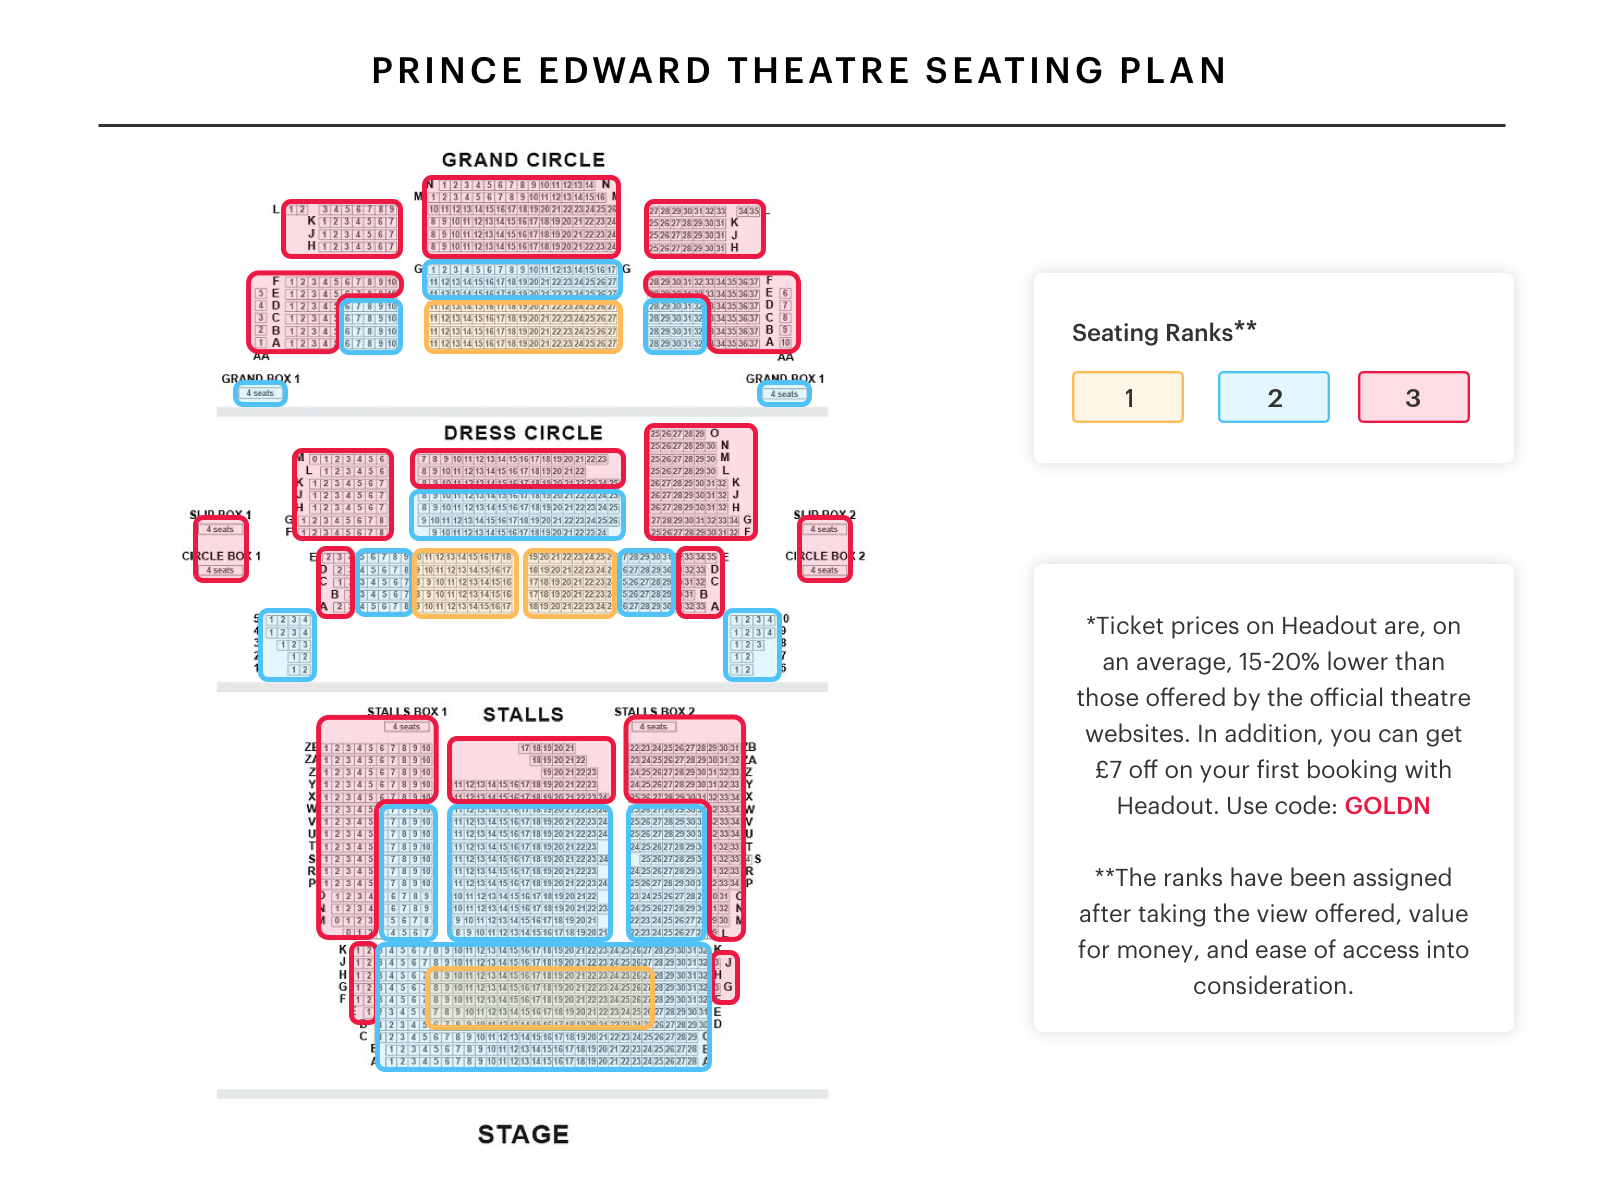 Navigating The Prince Edward Theatre Seating Plan